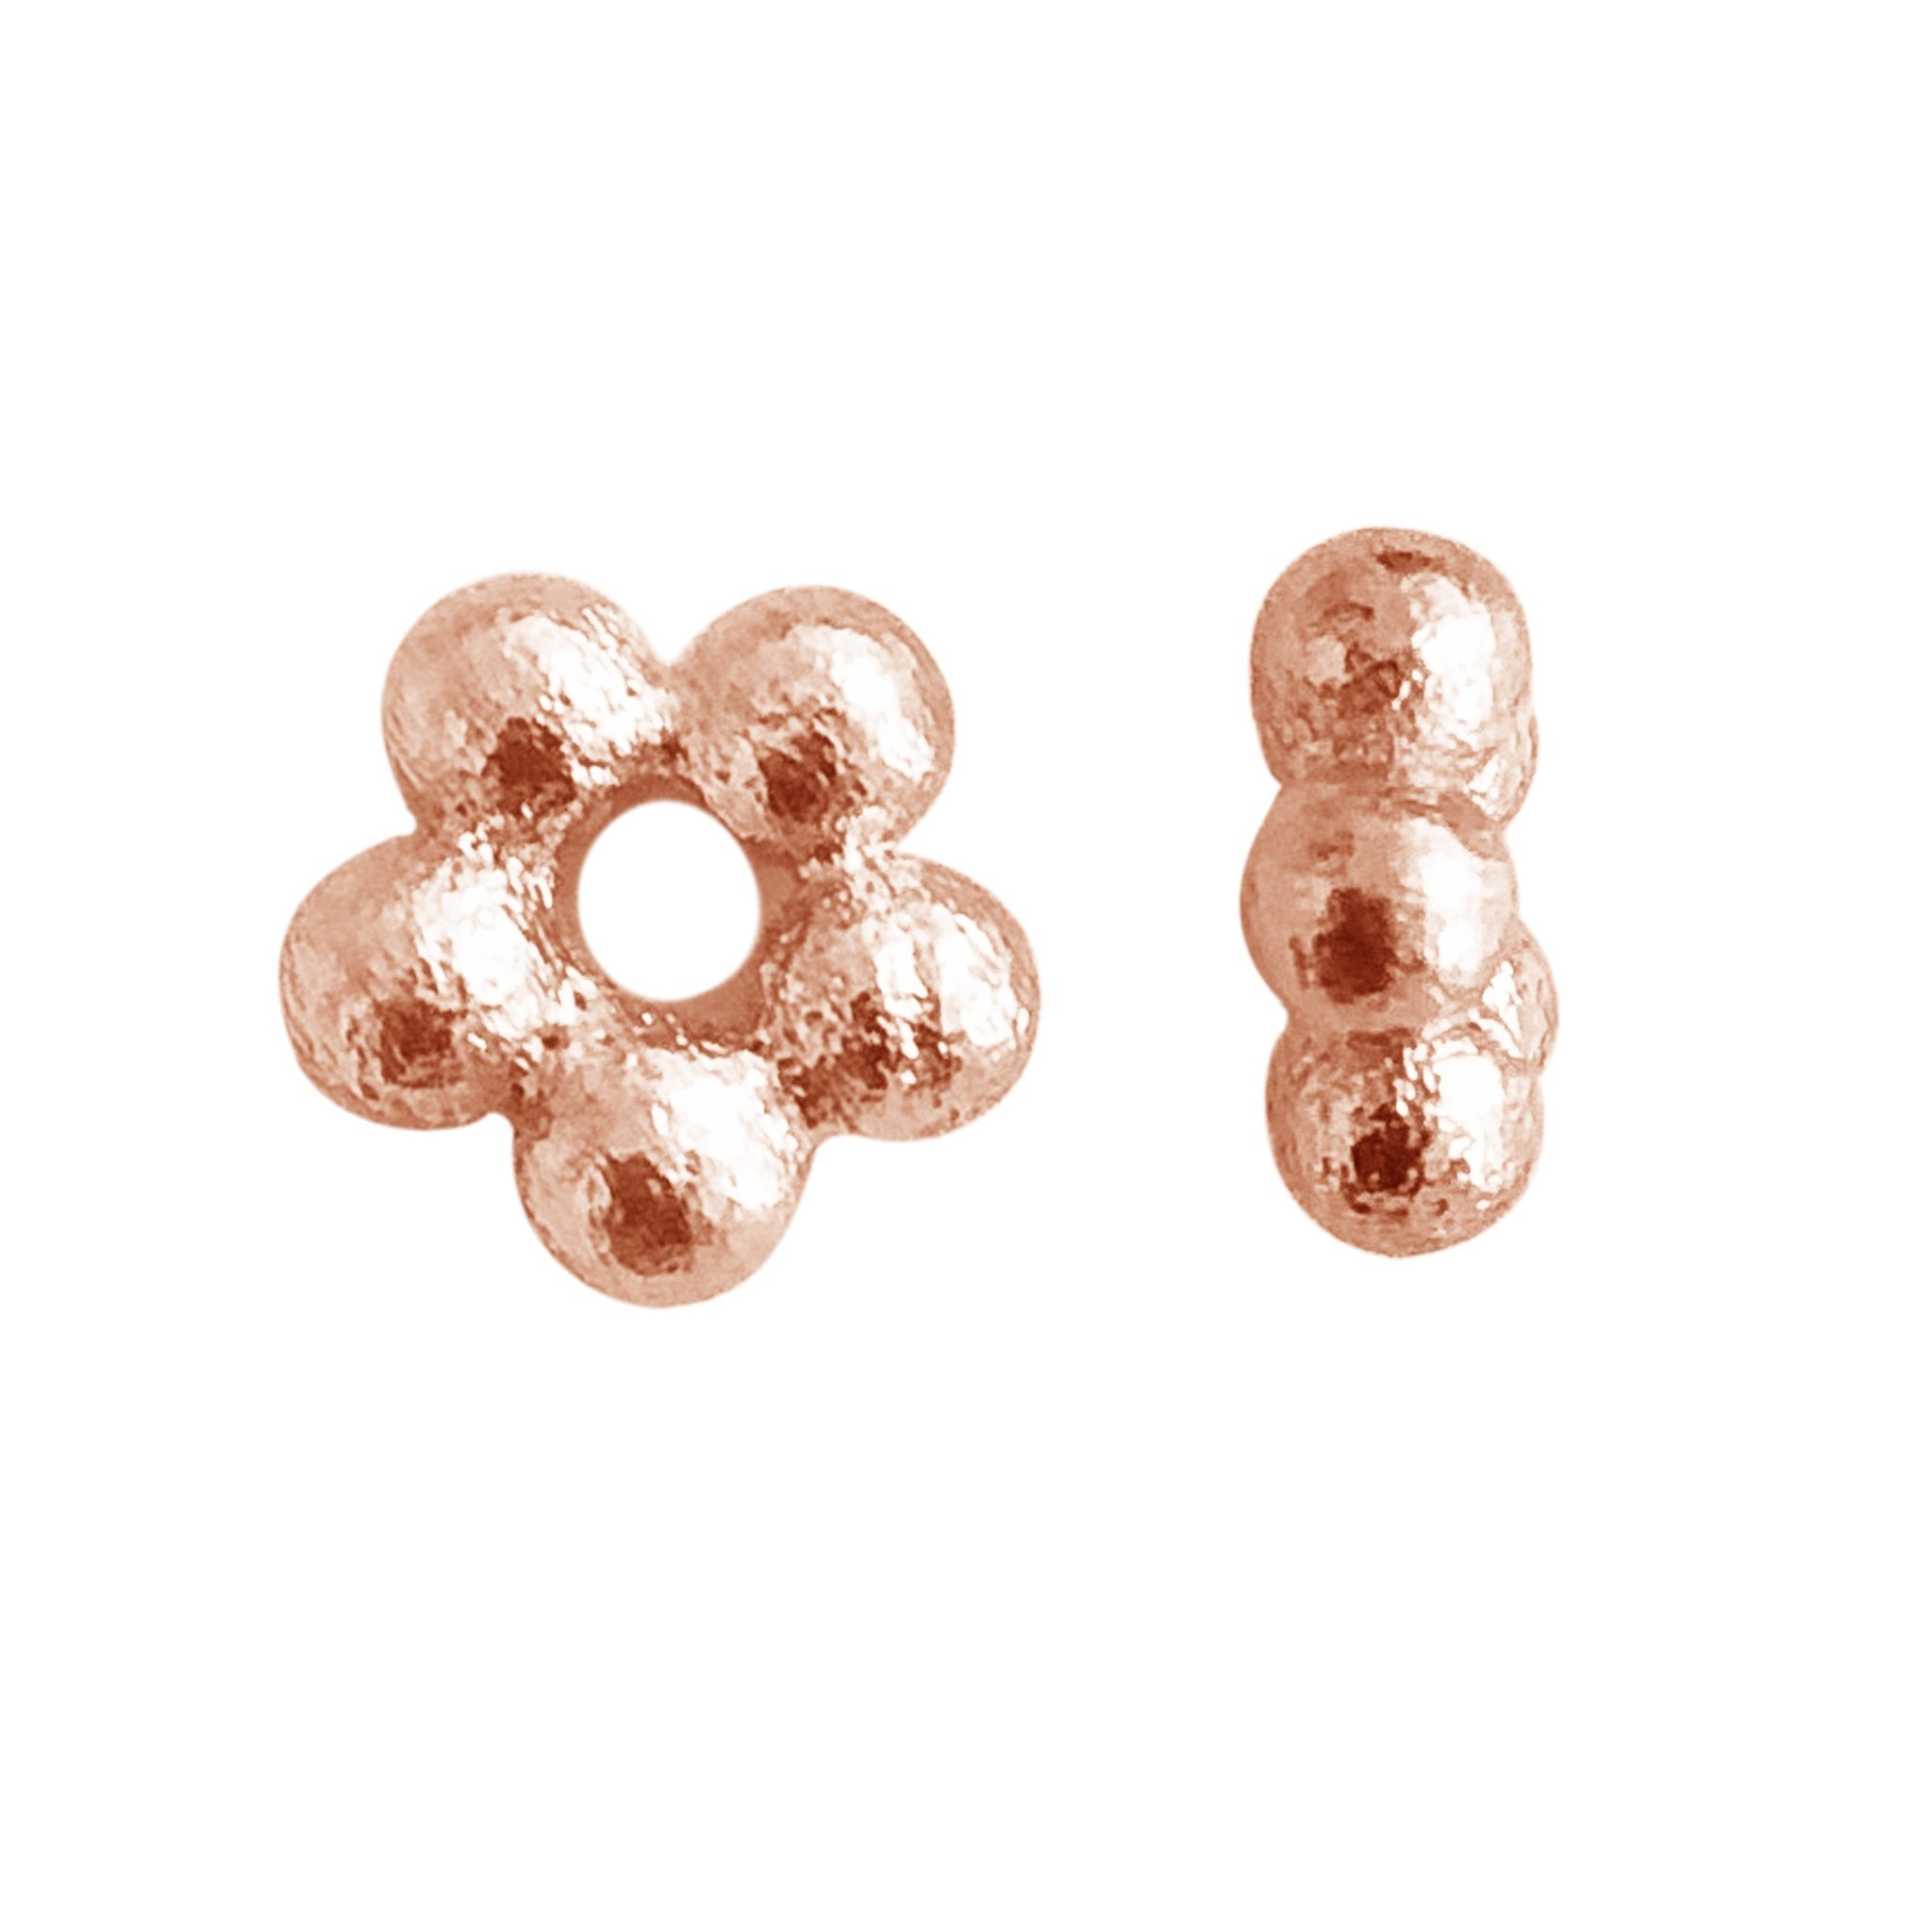 150 pcs Antiqued gold dotted spacers 3.5mm hole FC1104